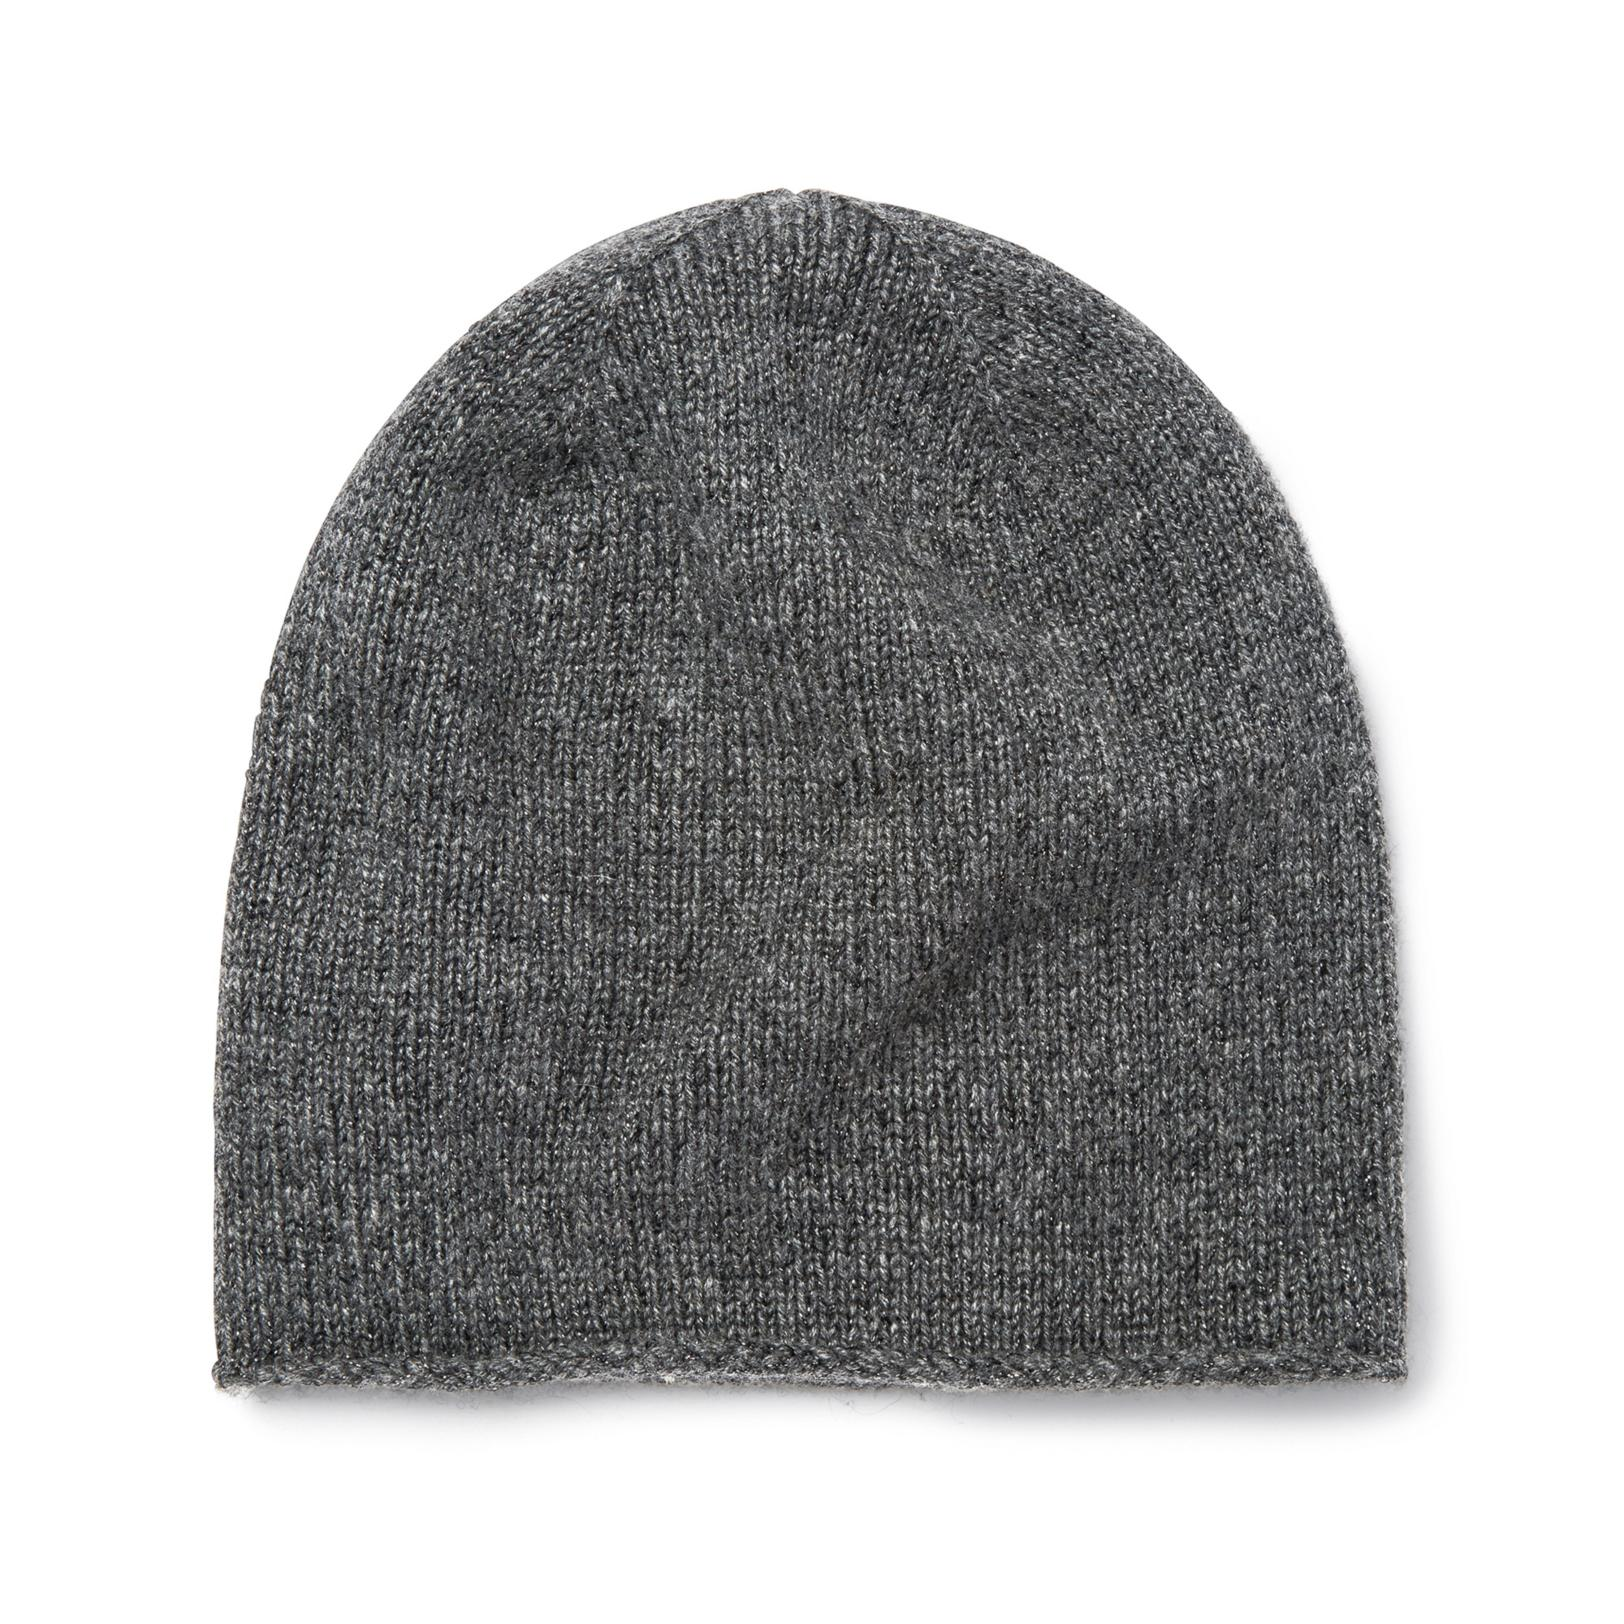 a7cd1878b2e Gallery. Previously sold at  The White Company · Women s Cashmere Beanies  ...